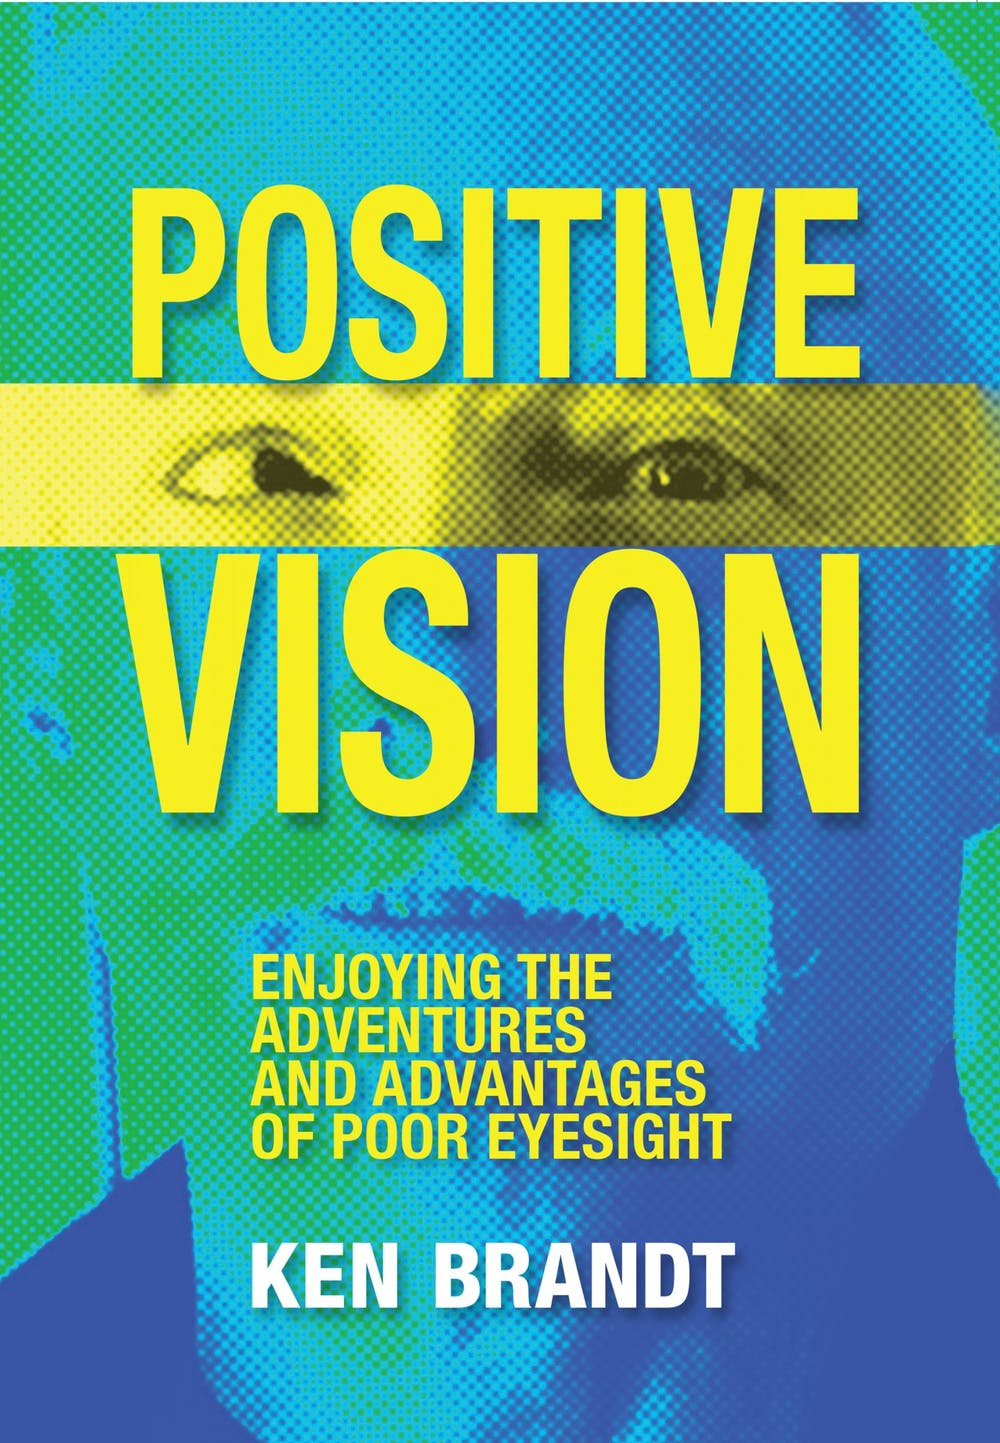 AU alum self-publishes a book on living an adventurous life with poor eyesight